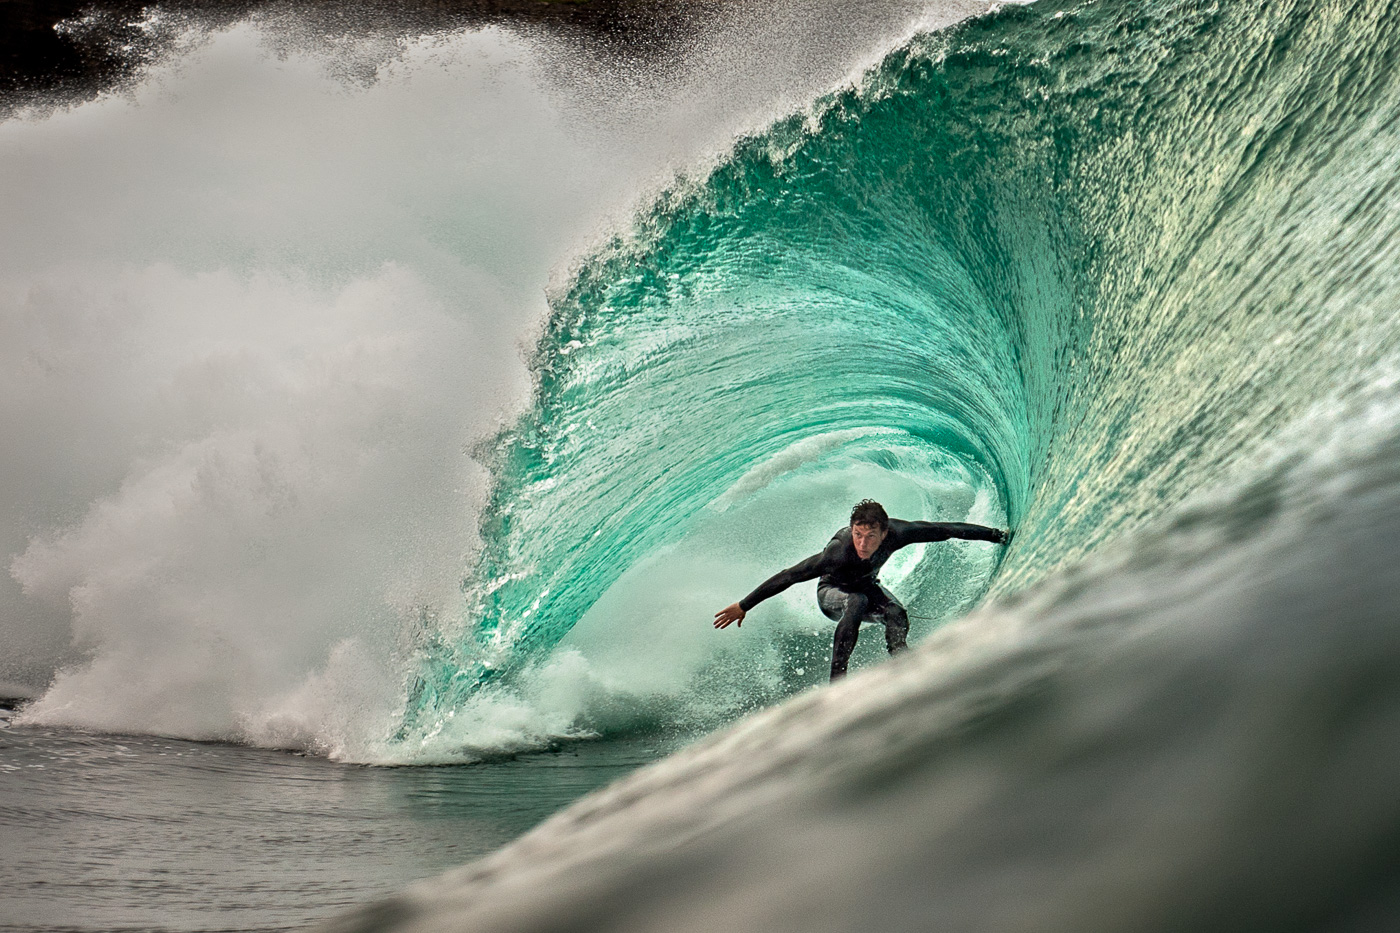 fergal smith rileys surfing